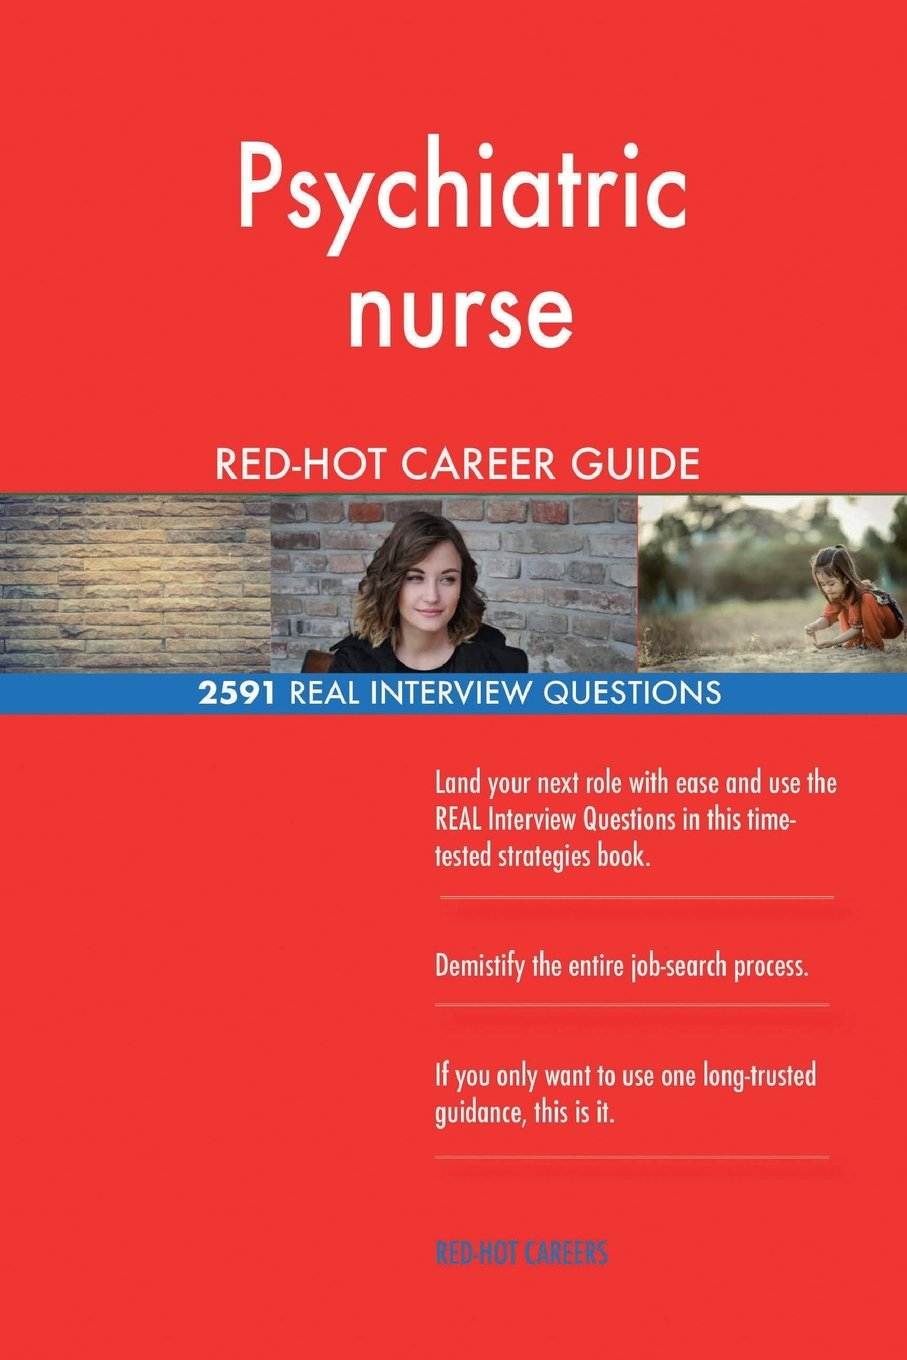 Psychiatric nurse RED-HOT Career Guide; 2591 REAL Interview Questions PDF